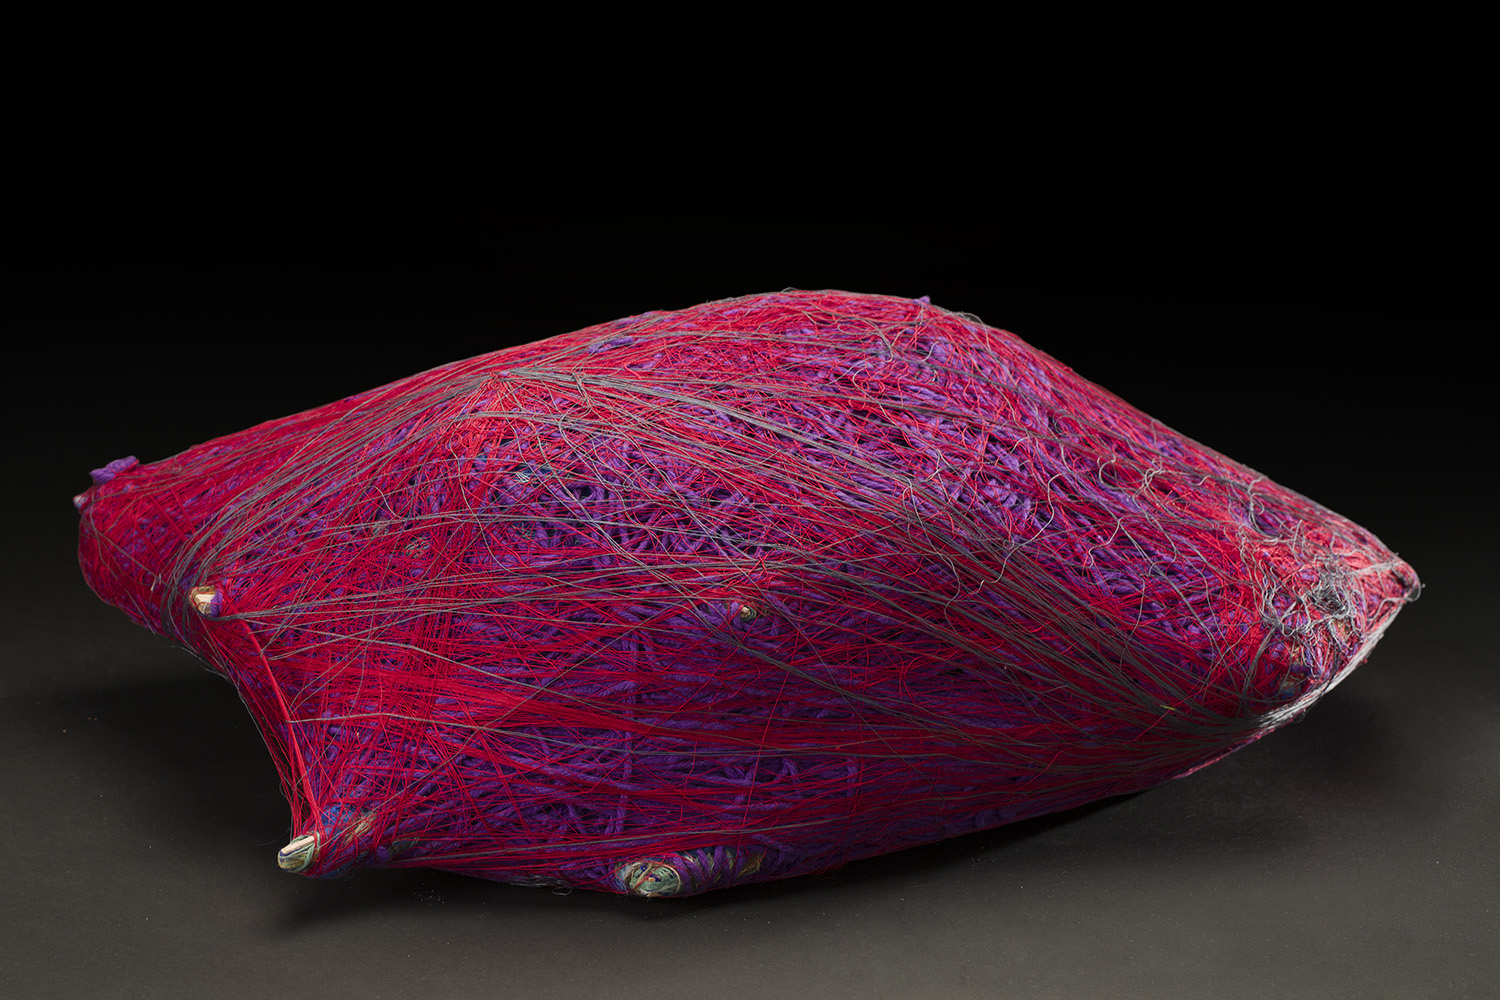 Tony Pedemonte Untitled, 2014 Fiber and wood 8 x 12 x 23 inches 20.3 x 30.5 x 58.4 cm TPed 20